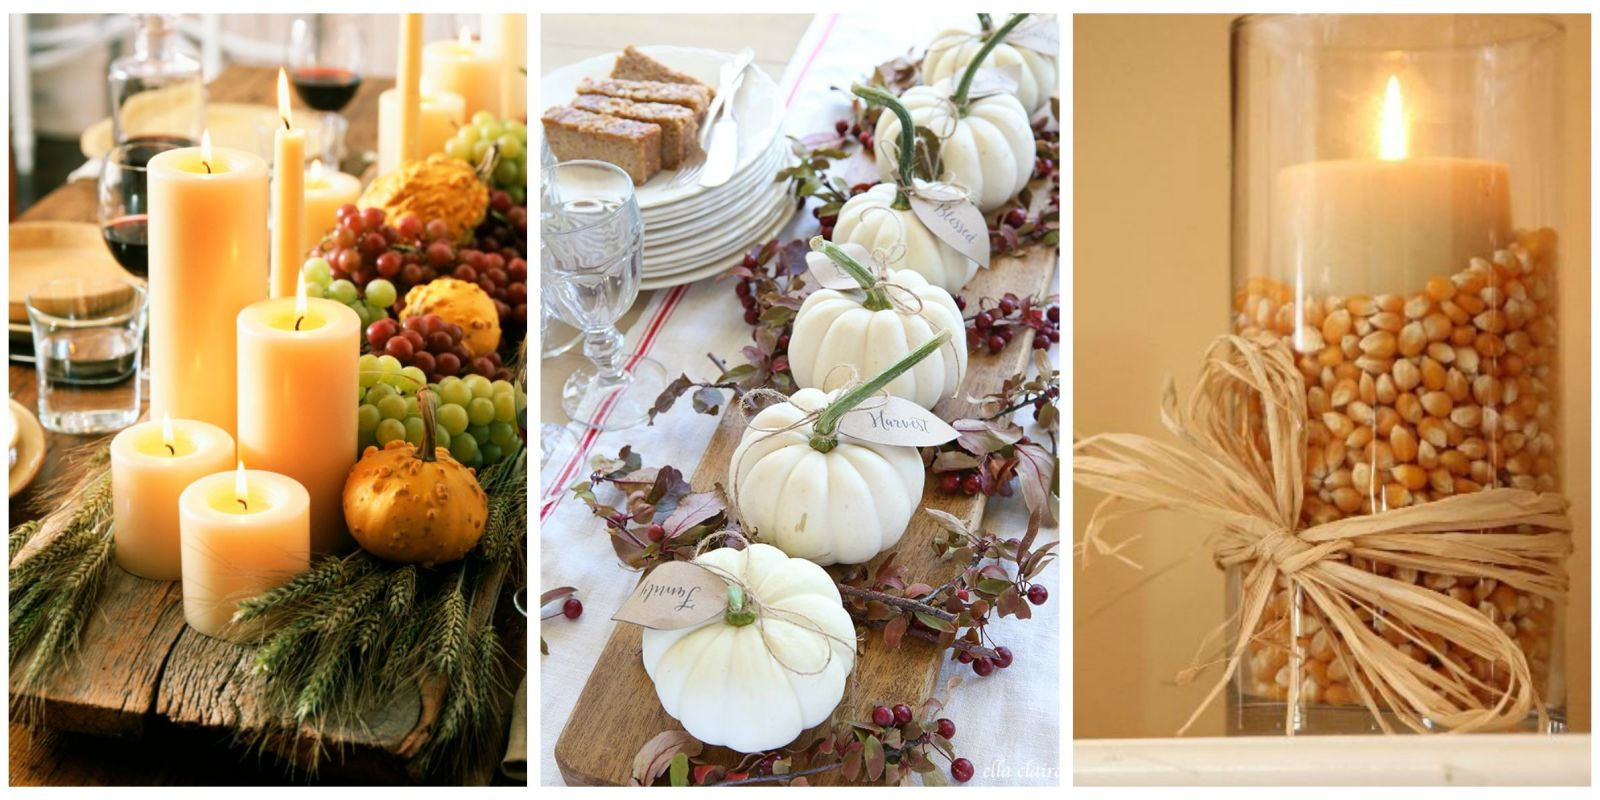 40 fall and thanksgiving centerpieces diy ideas for fall Fall decorating ideas for dinner party